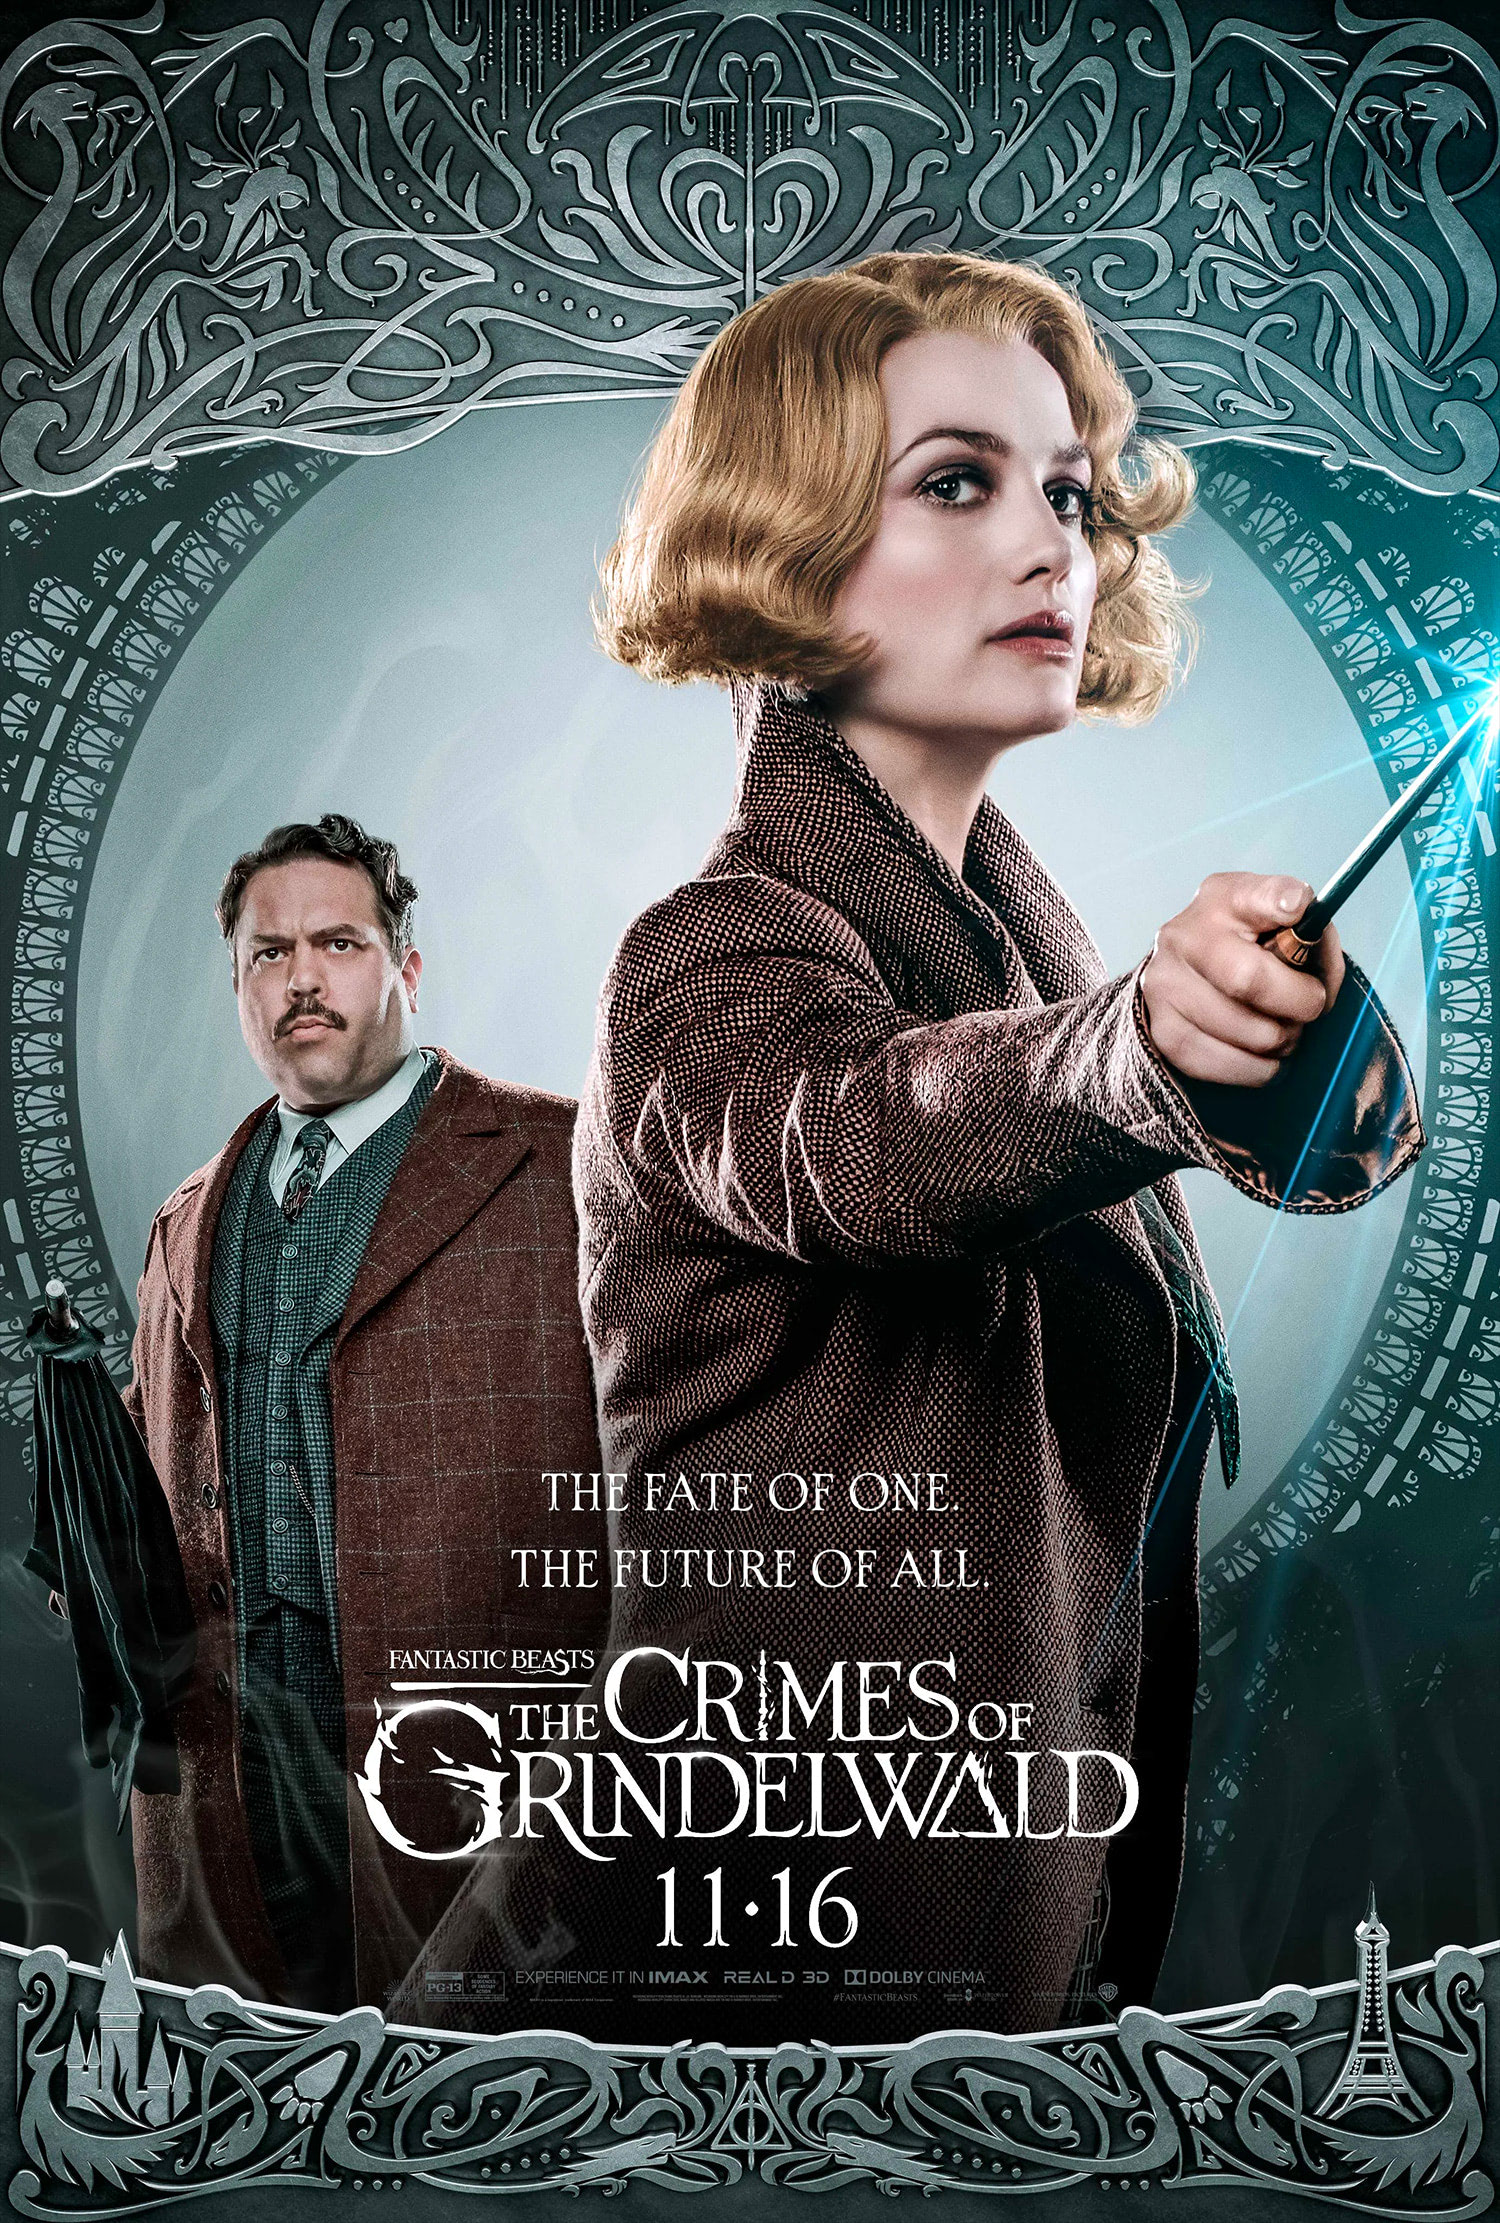 'Crimes of Grindelwald' Queenie poster #2